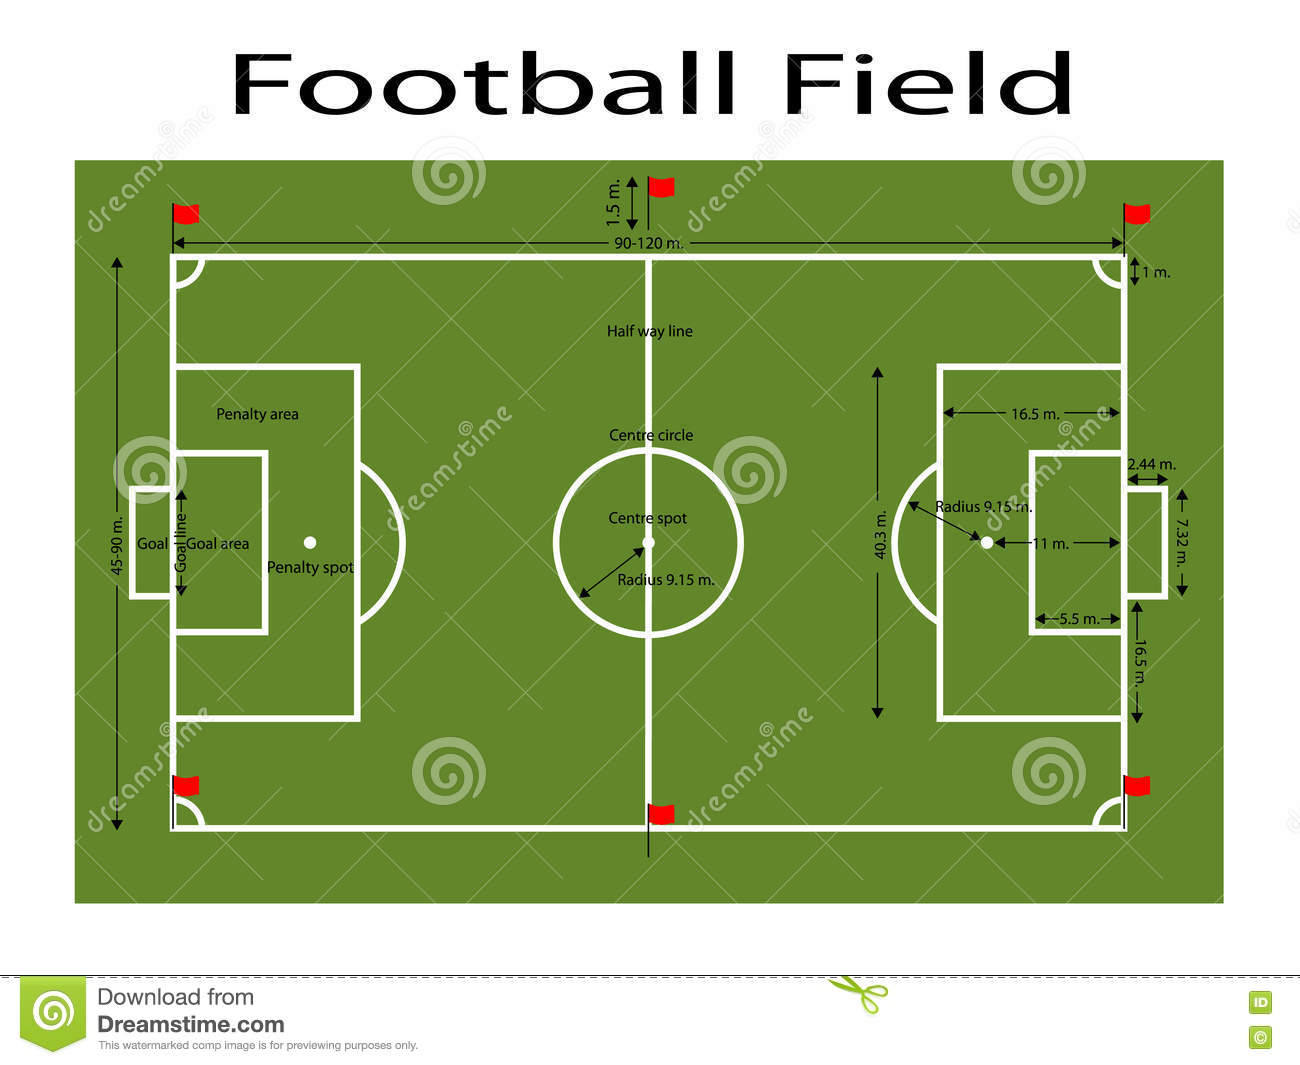 diagram of football ground with measurements aem fic 8 wiring field editorial image cartoondealer